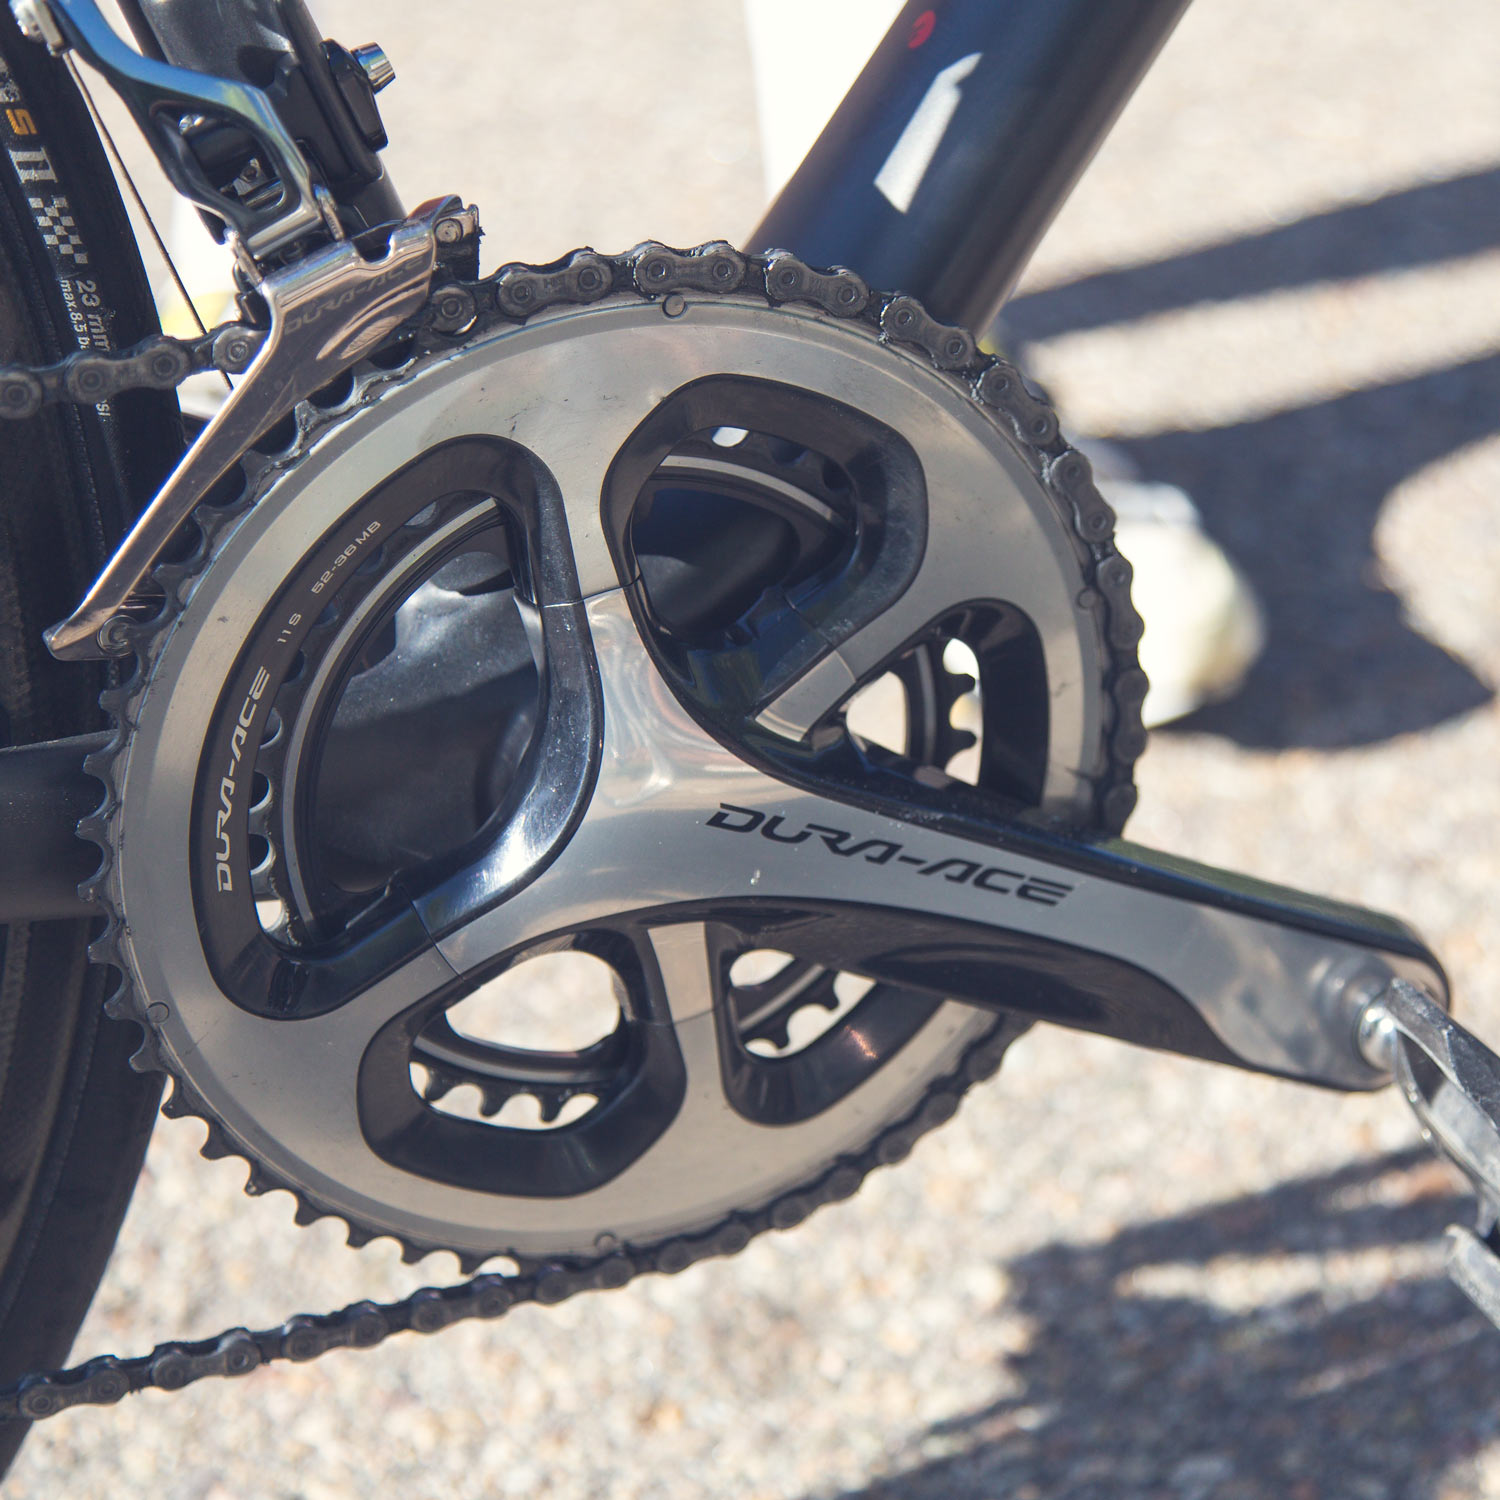 Road bike drivetrain